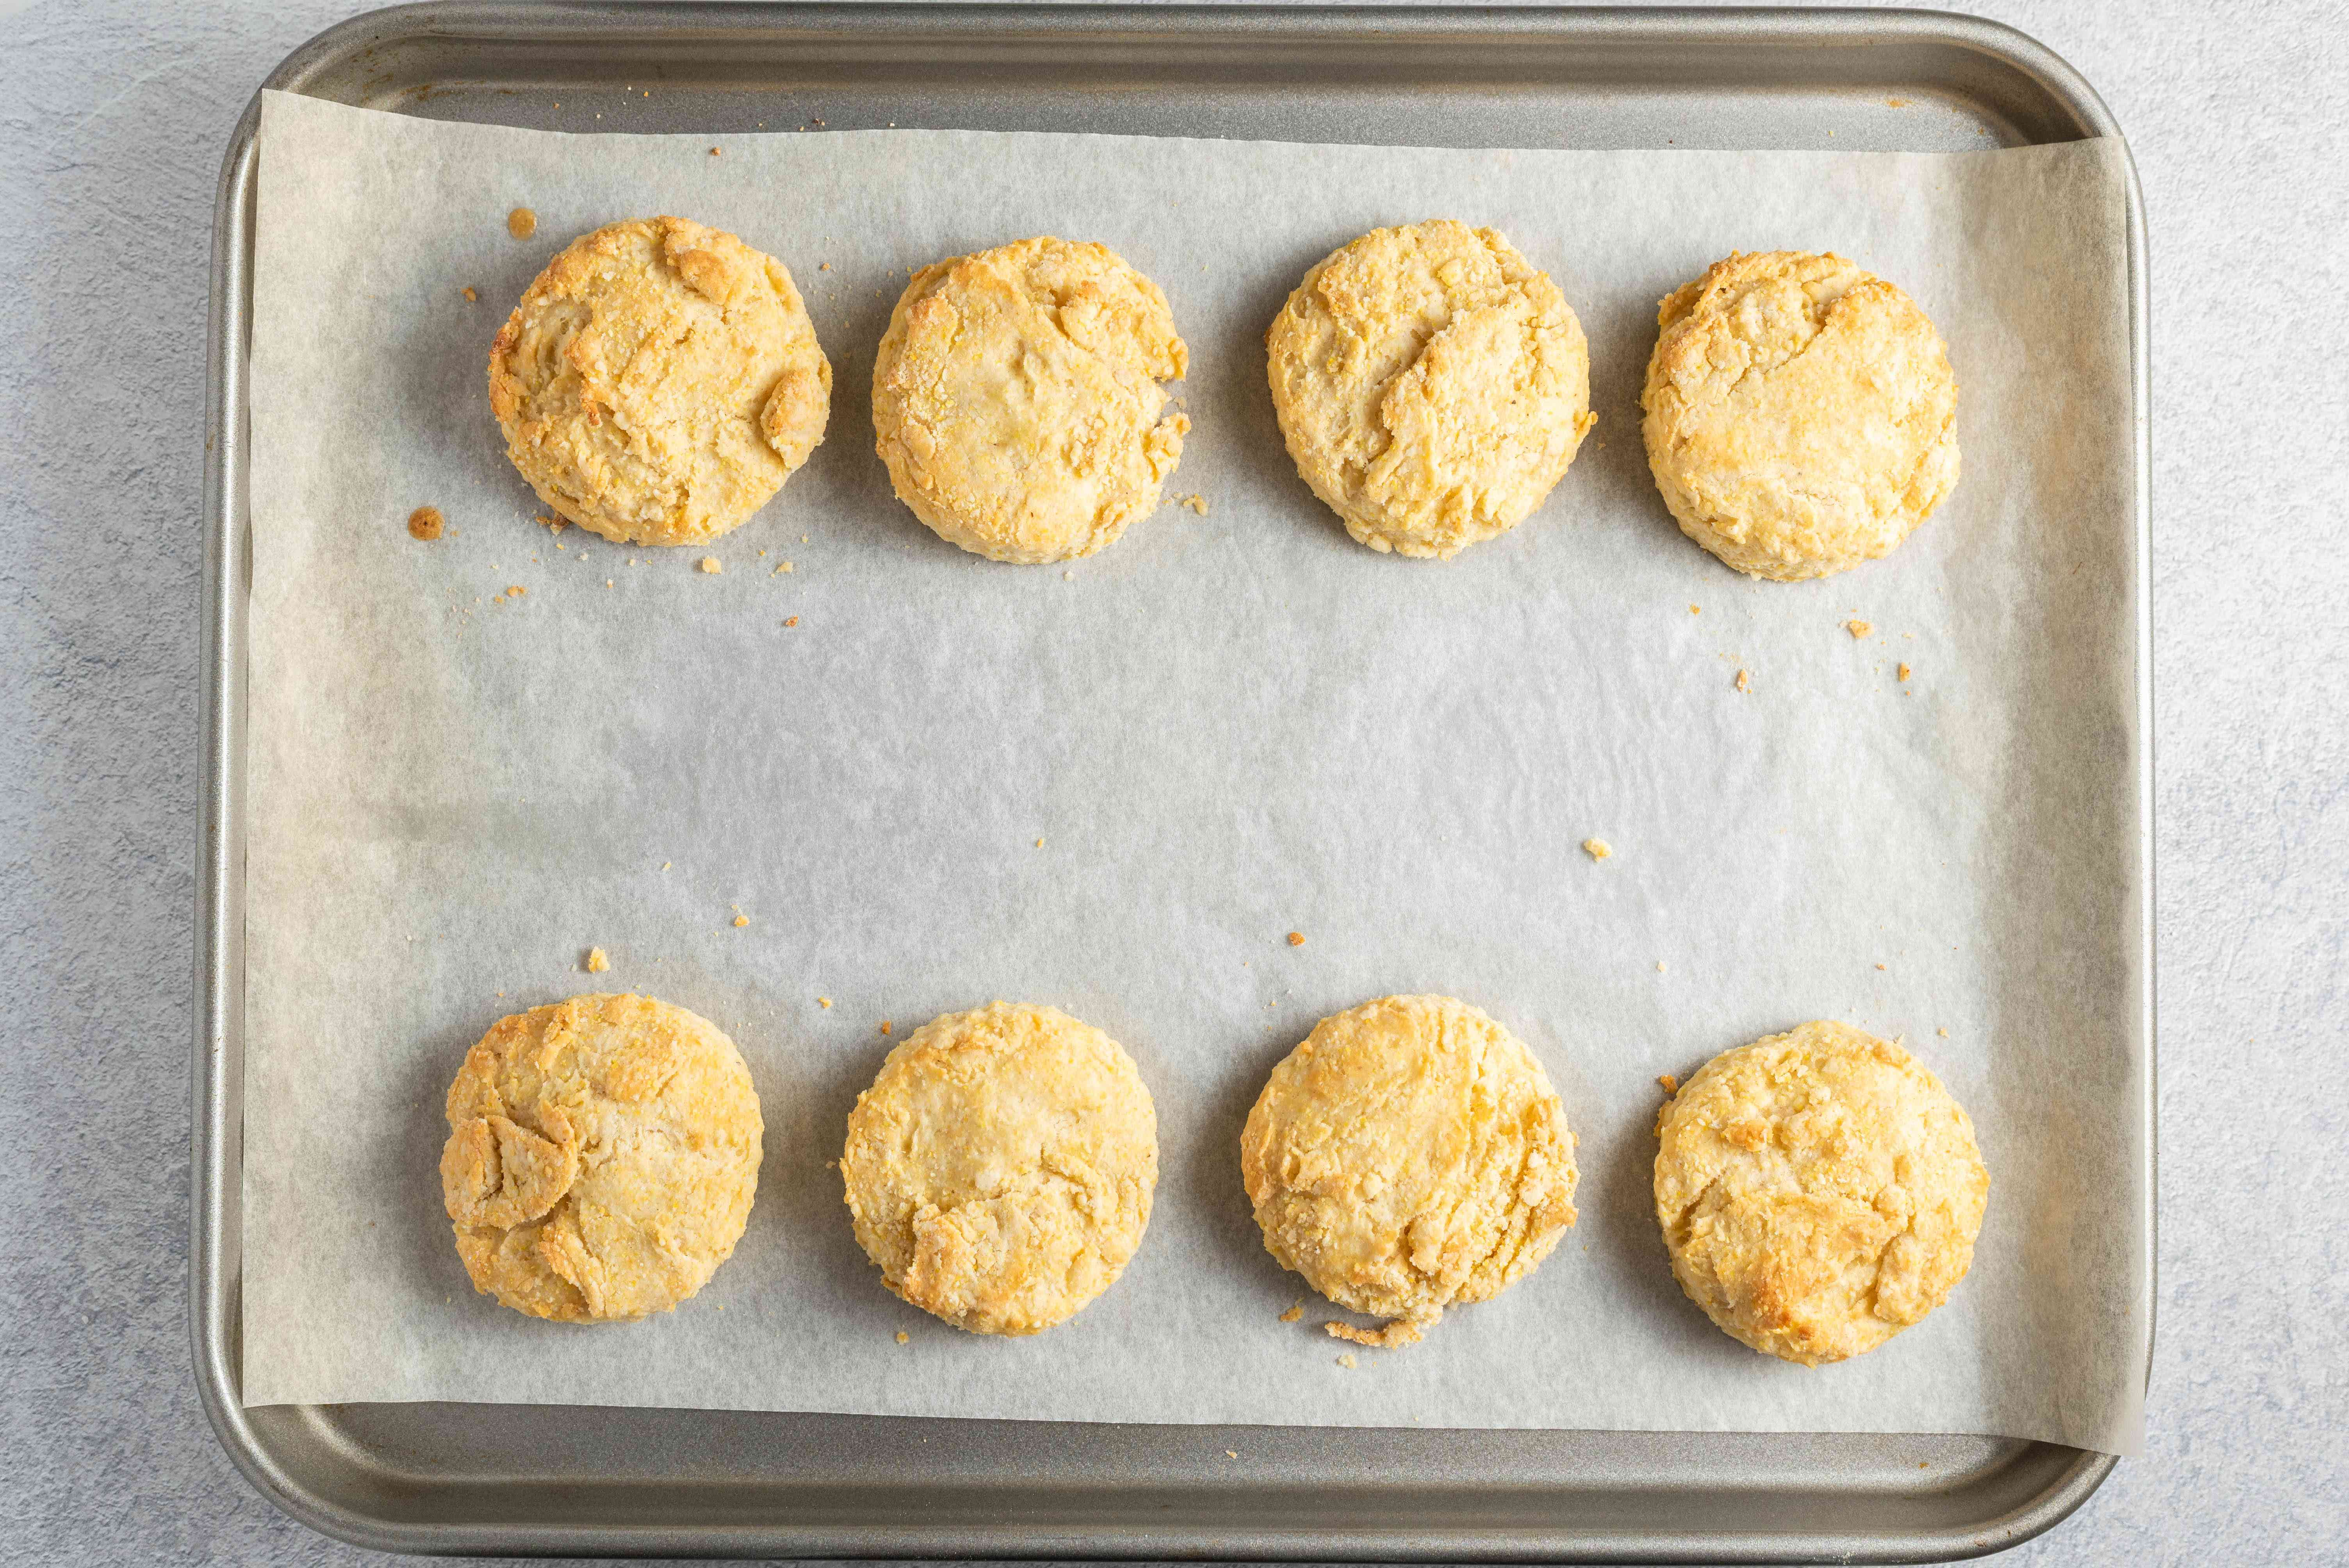 Bake biscuits